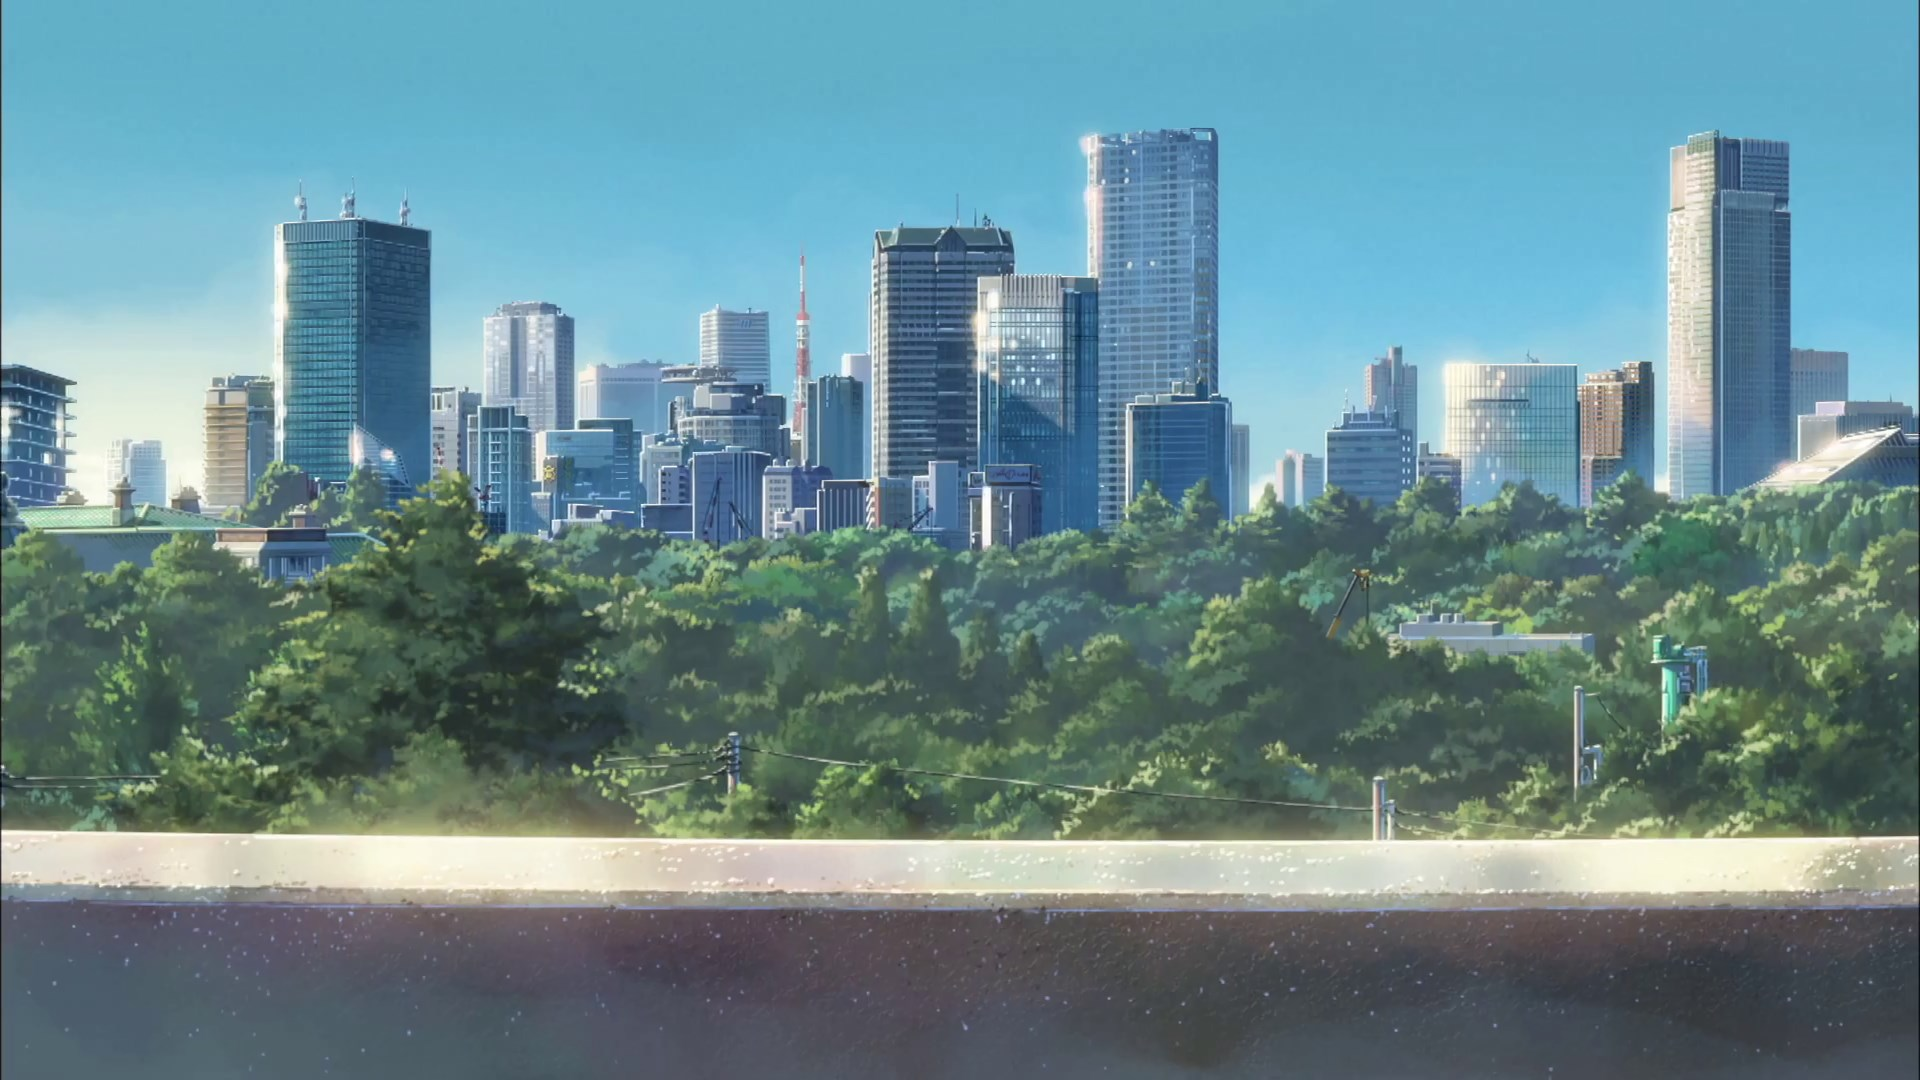 1920×1080 Pretty Your Name Wallpaper Wpc9201134 - Your Name Background Art , HD Wallpaper & Backgrounds